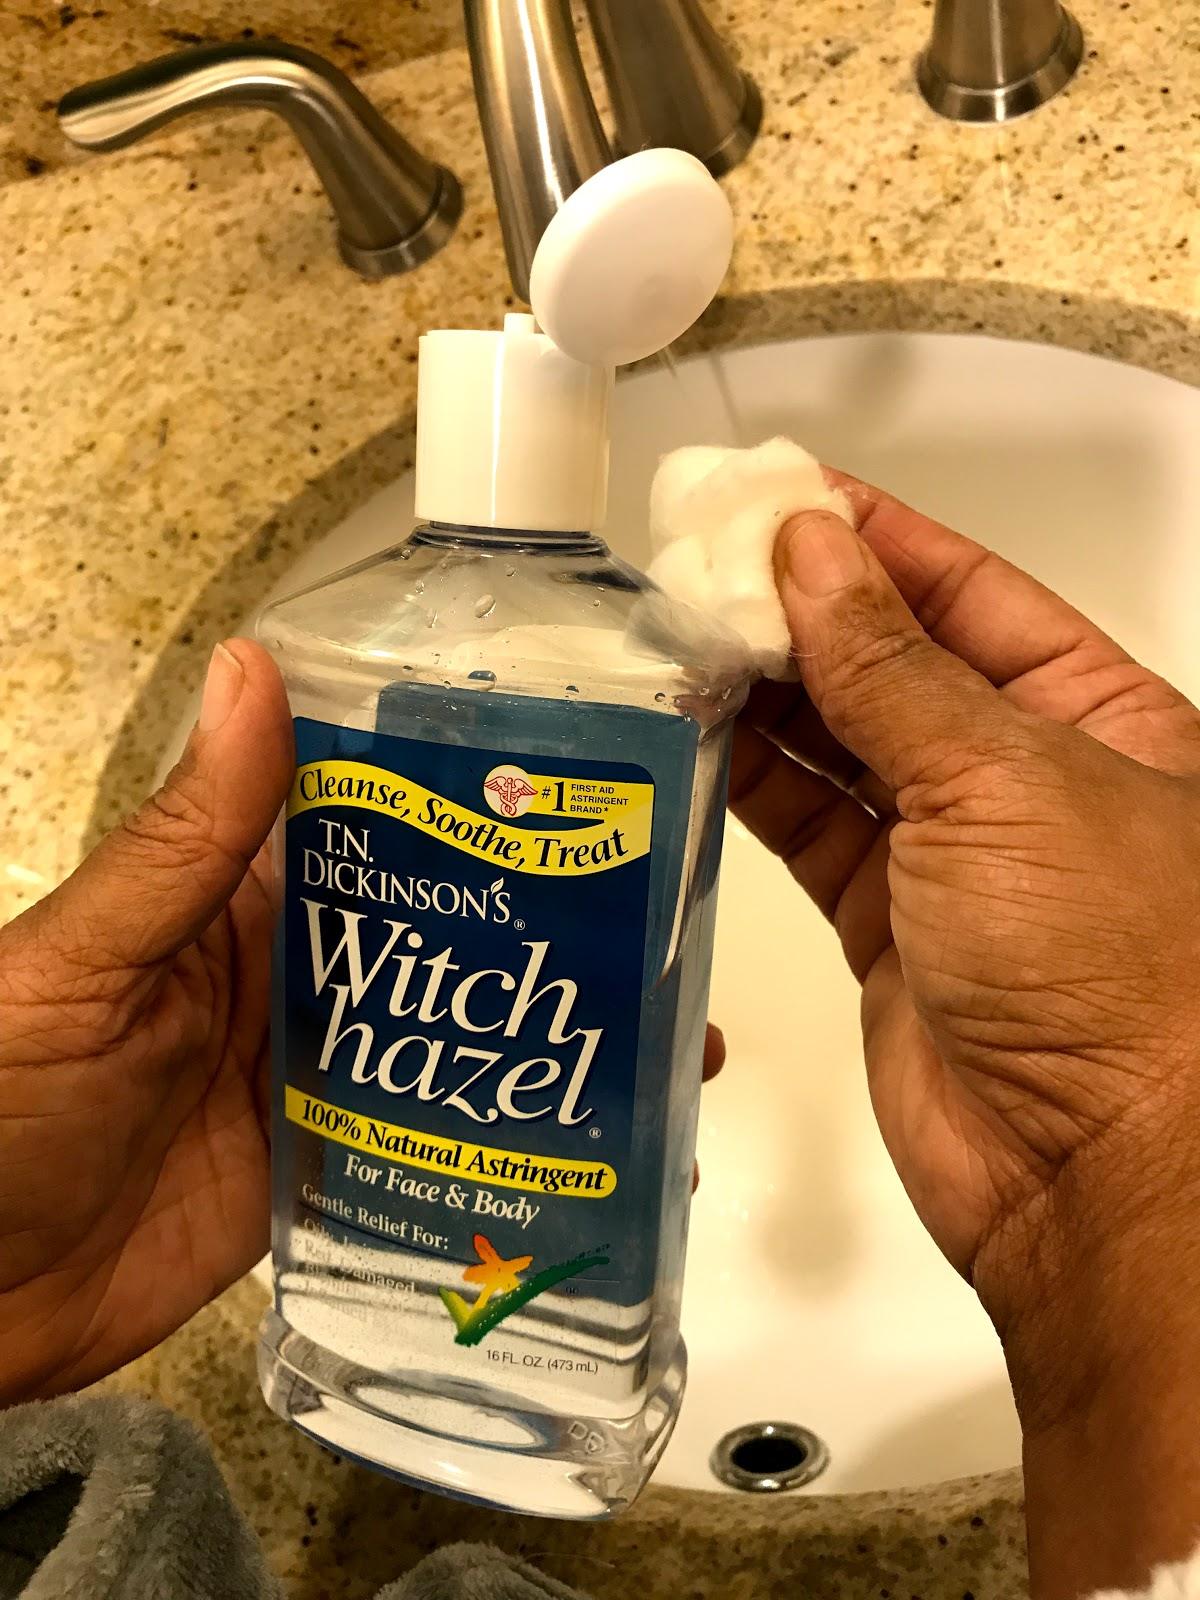 Image: Witch Hazel is the first step in my skincare routine.   First Step Witch Hazel :  Witch Hazel has a lot of benefits when used regularly, it cleans and clears acne, It can be used to soothe sunburnt skin. I like to use it in the morning to remove any dirt in my face. It is also great to use around my dark circles because it has no fragrance and it acts as a brightening toner. I use it first although it can be used after washing my face.